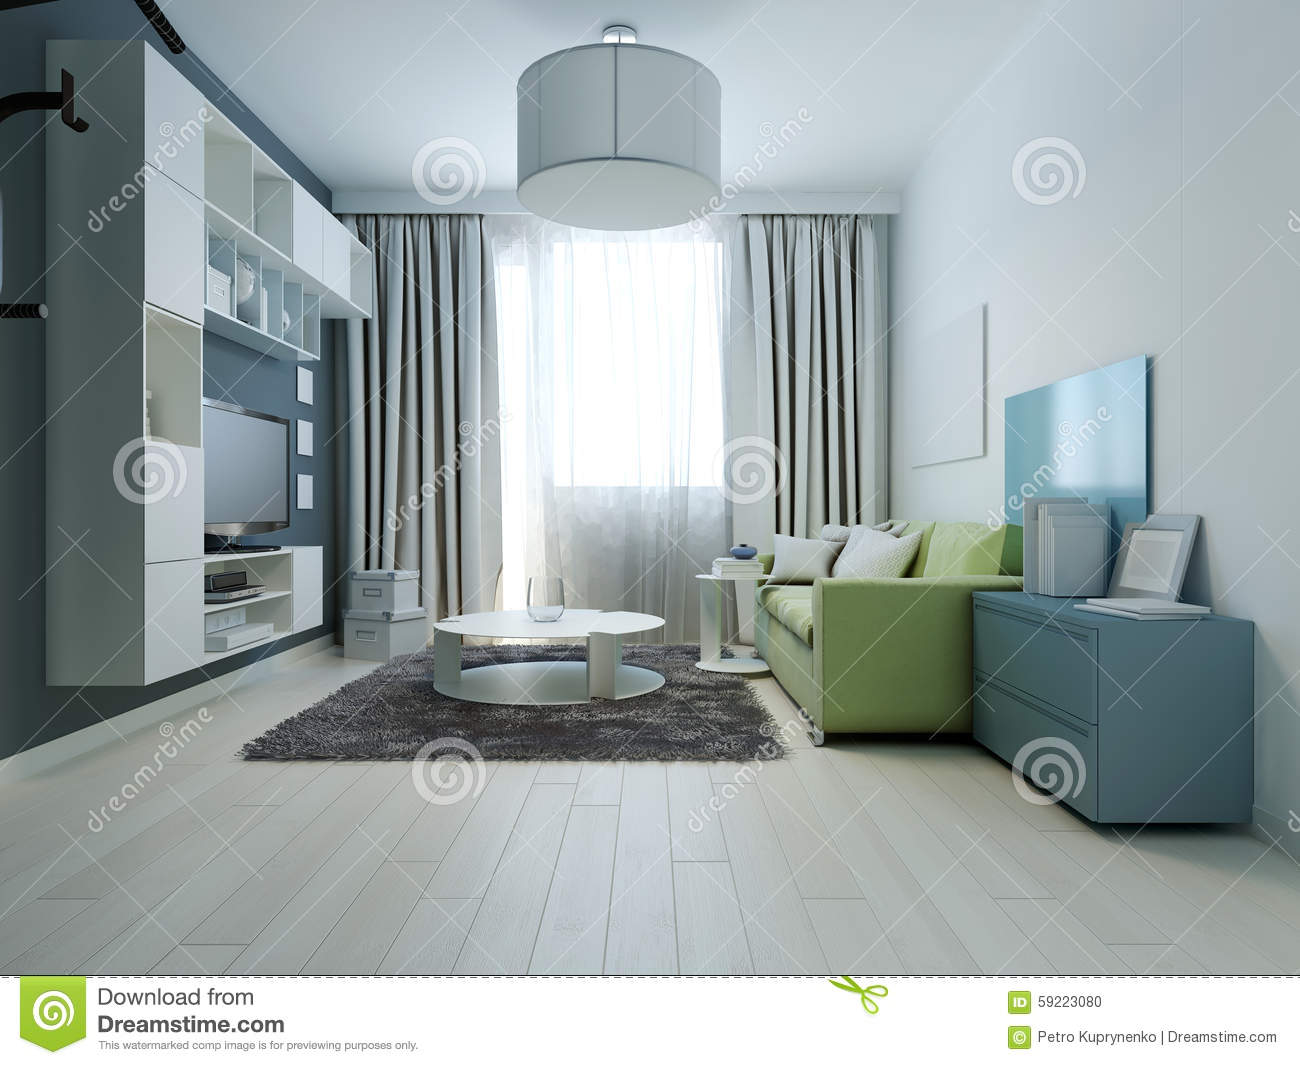 Design of bright colored living room kitsch style